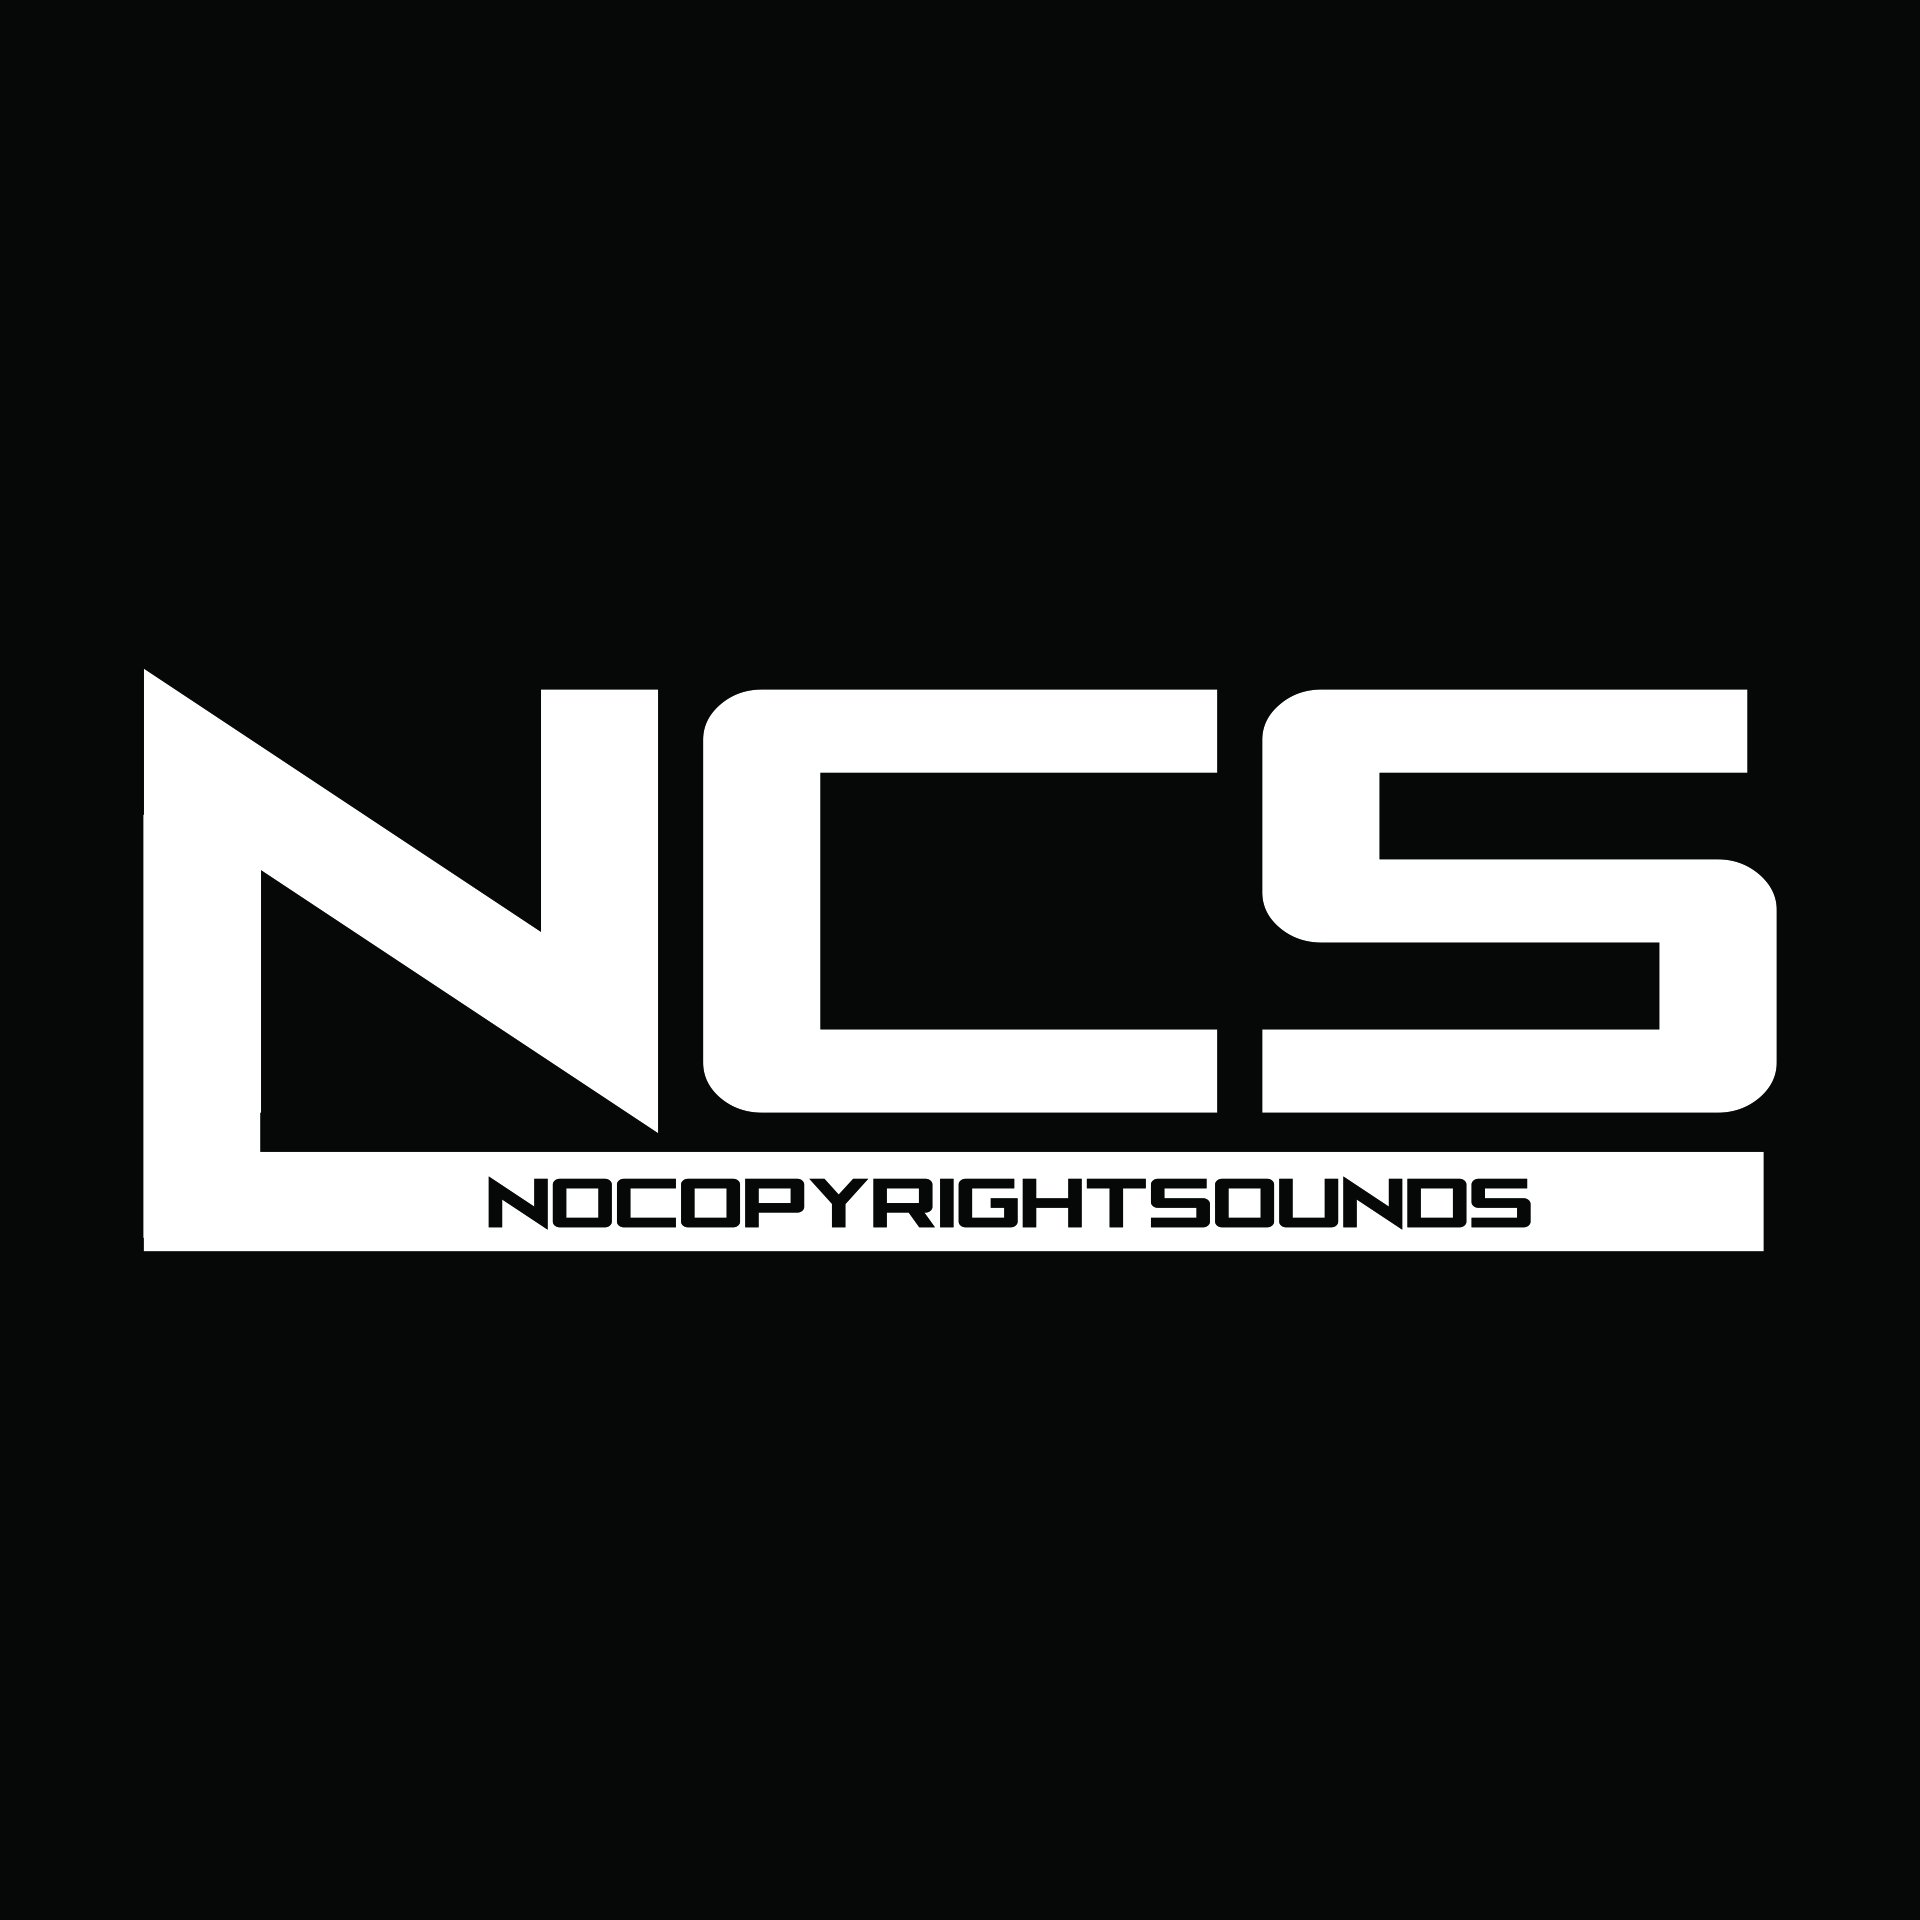 NoCopyrightSounds on Twitter: